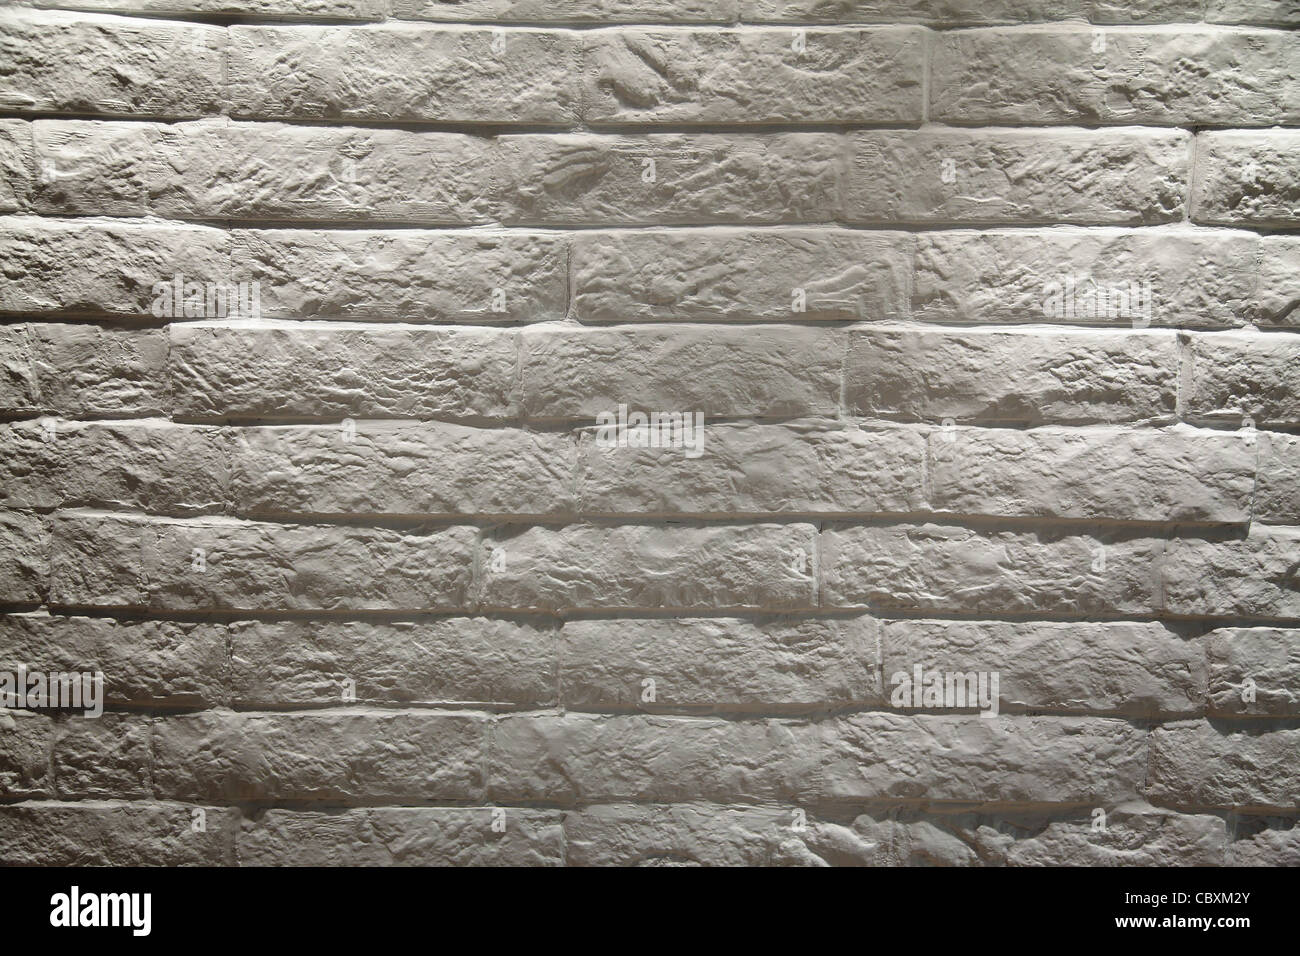 White brick wall background Photo Stock